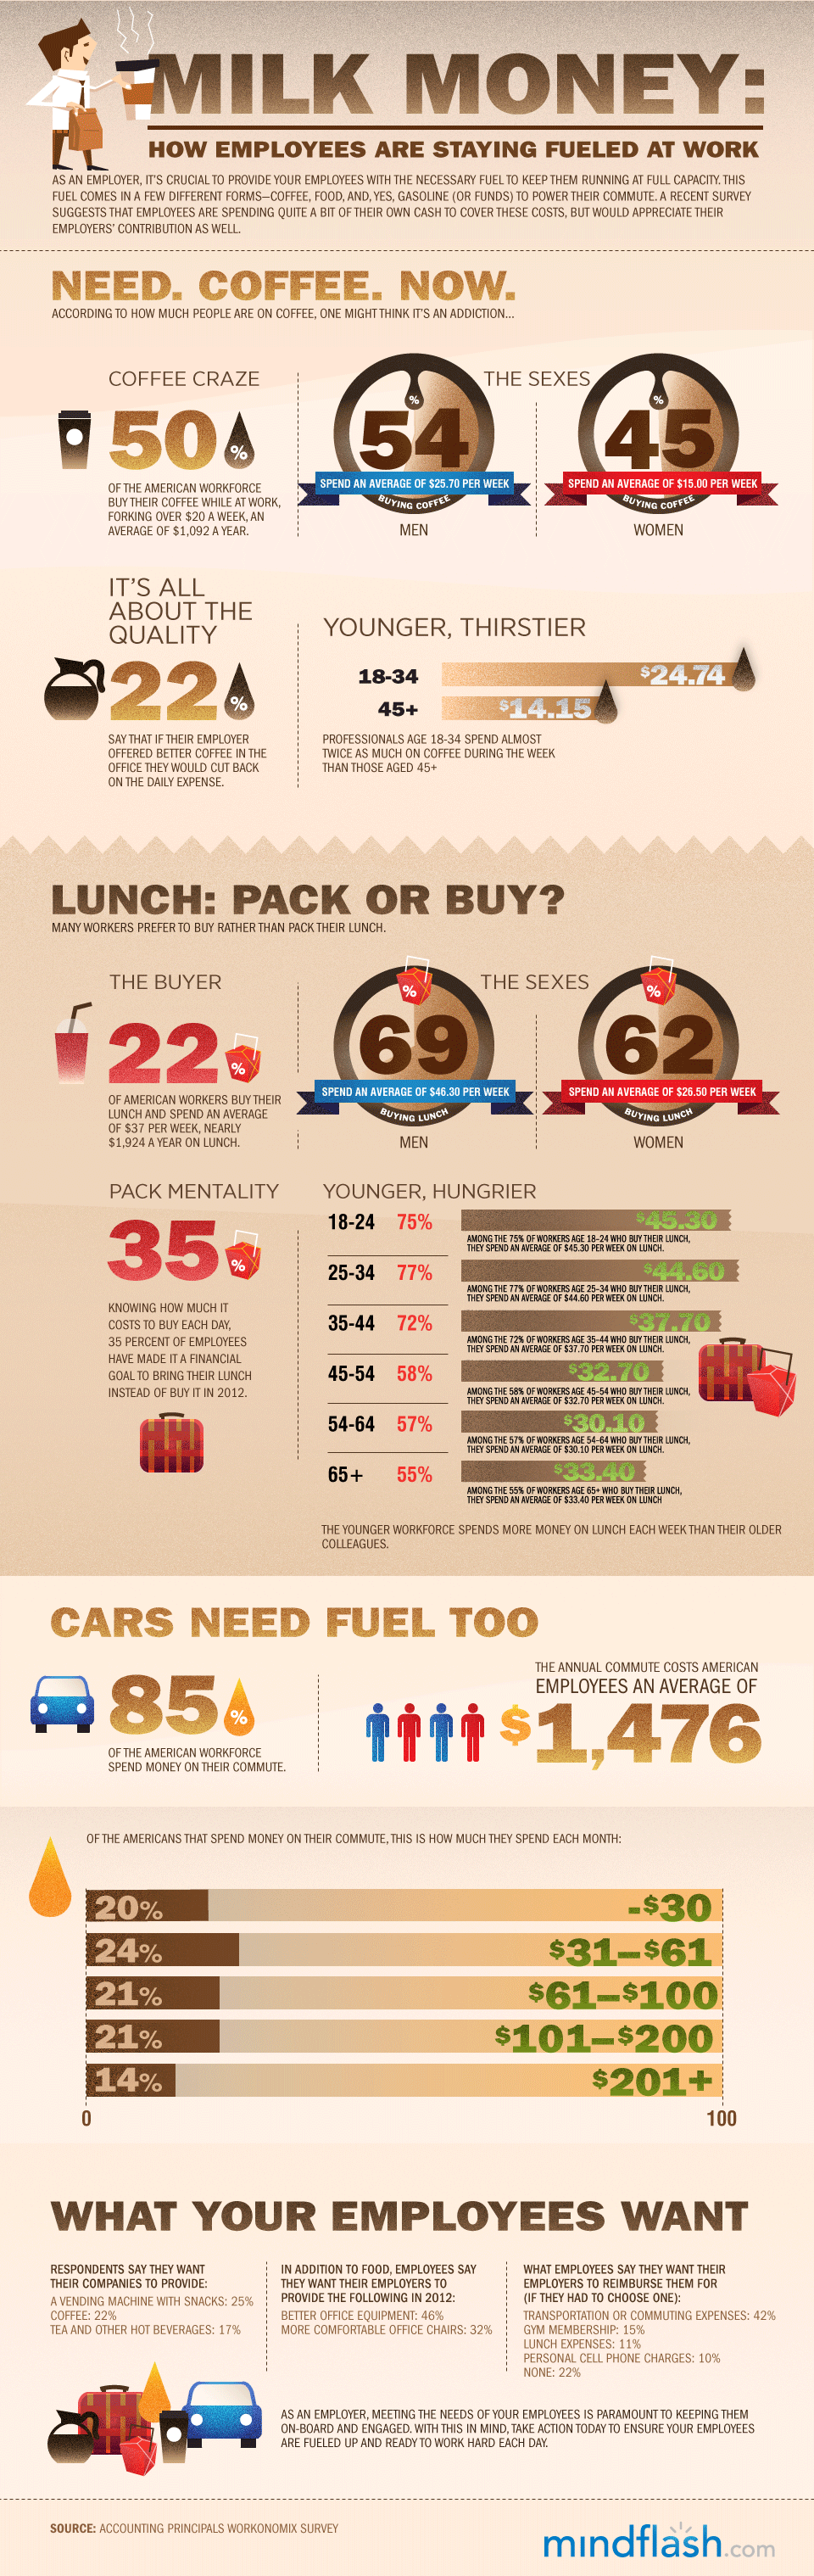 Infographic — Milk Money: How Employees Are Staying Fueled At Work